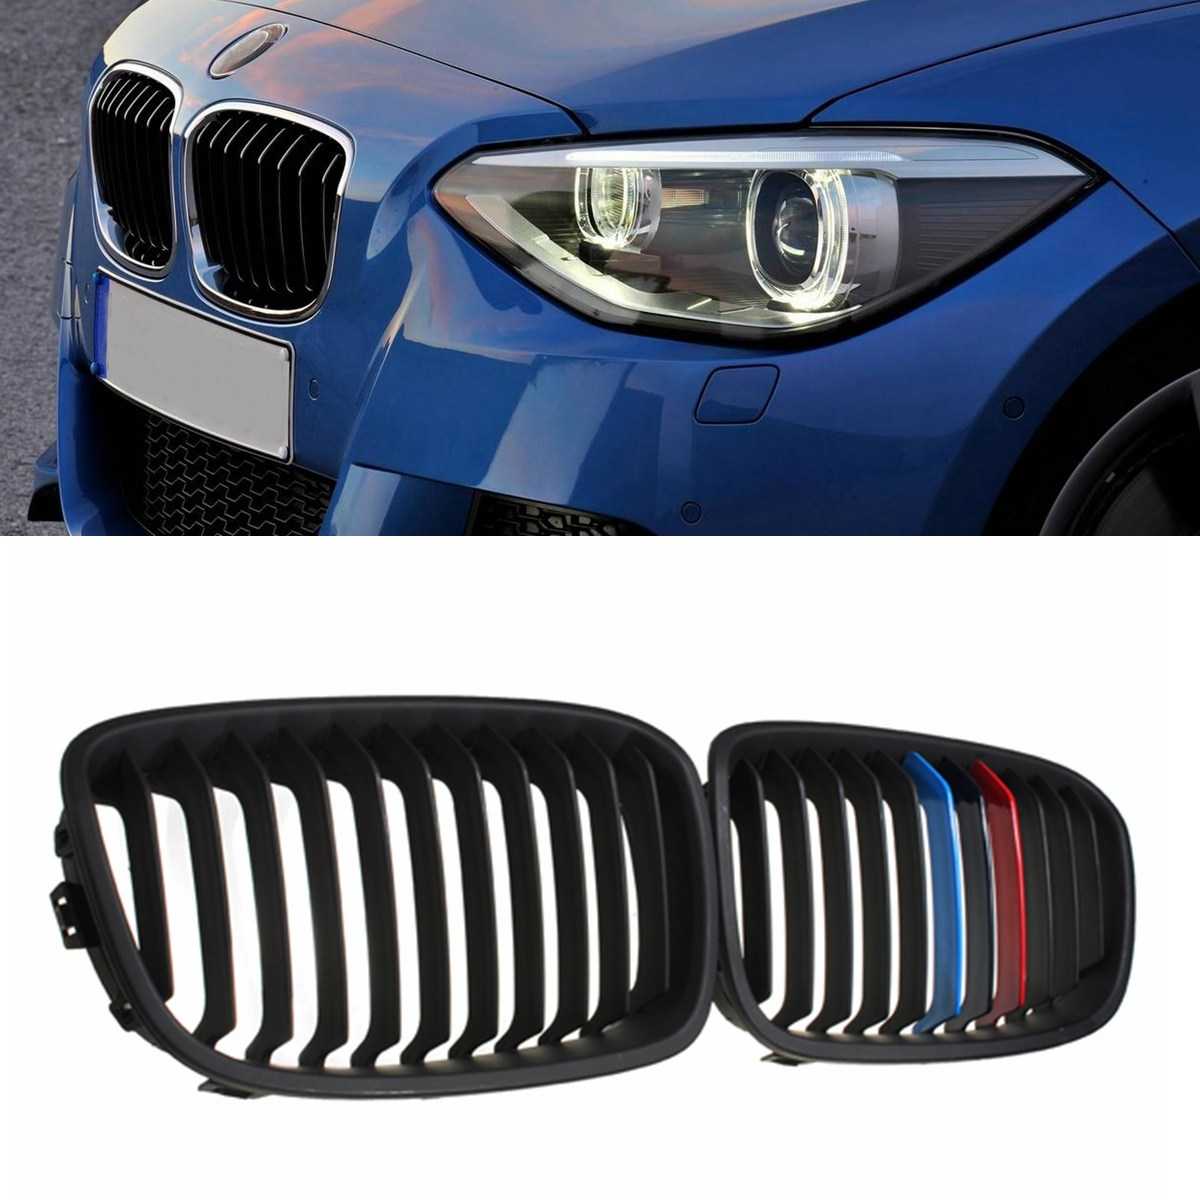 Pair M-Color Gloss/Matte Black Kidney Grille Grill For BMW F20 F21 1-SERIES 2011-ONWARDS 1 pair gloss black m color front bumper center kidney grilles for bmw x3 f25 2011 2012 2013 2014 racing grills